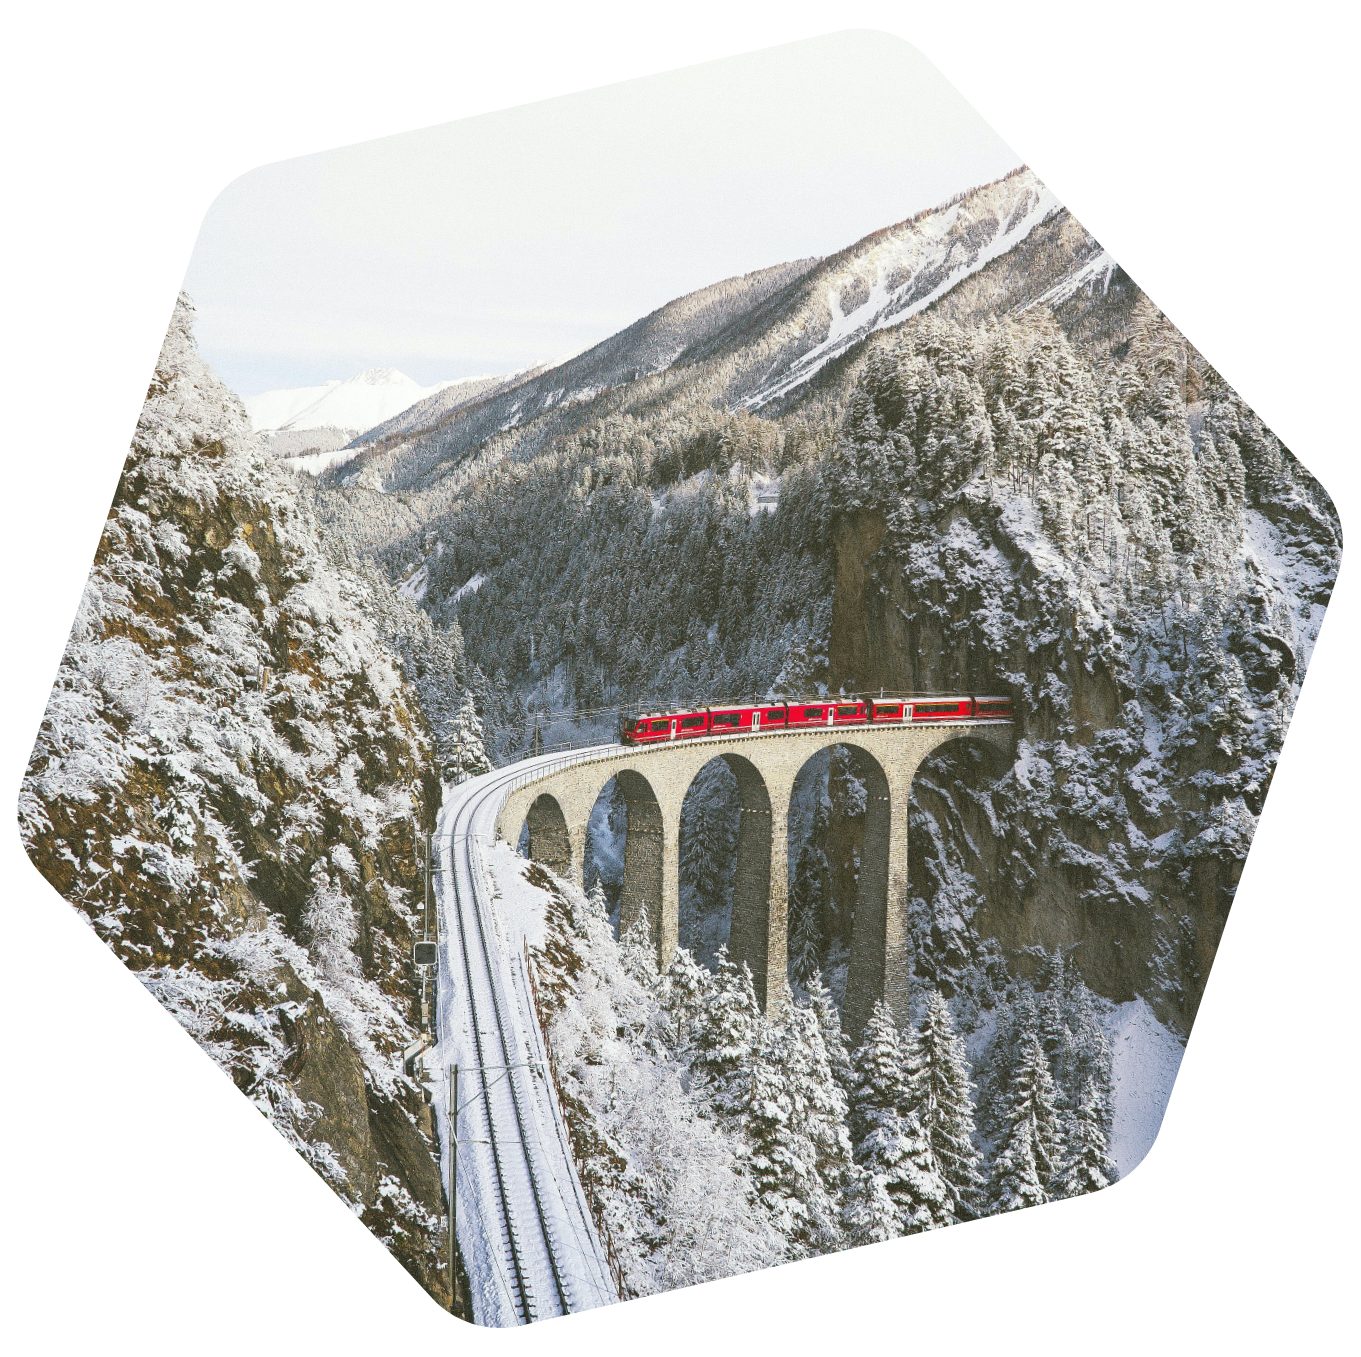 Swiss train in the mountains